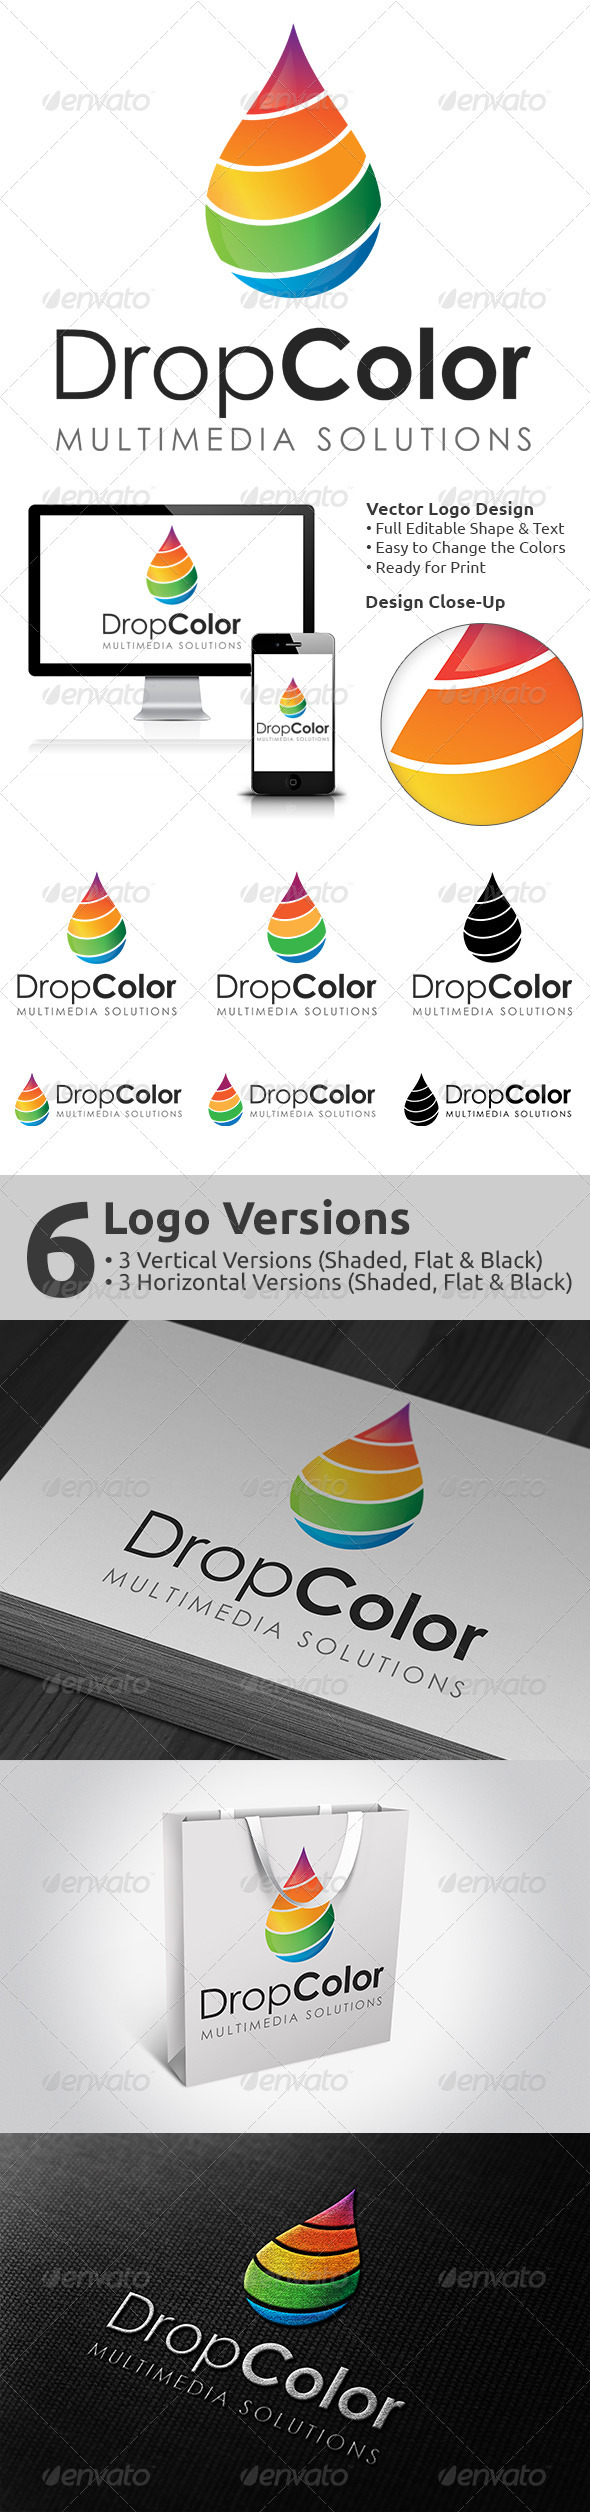 DropColor Logo Design - Vector Abstract